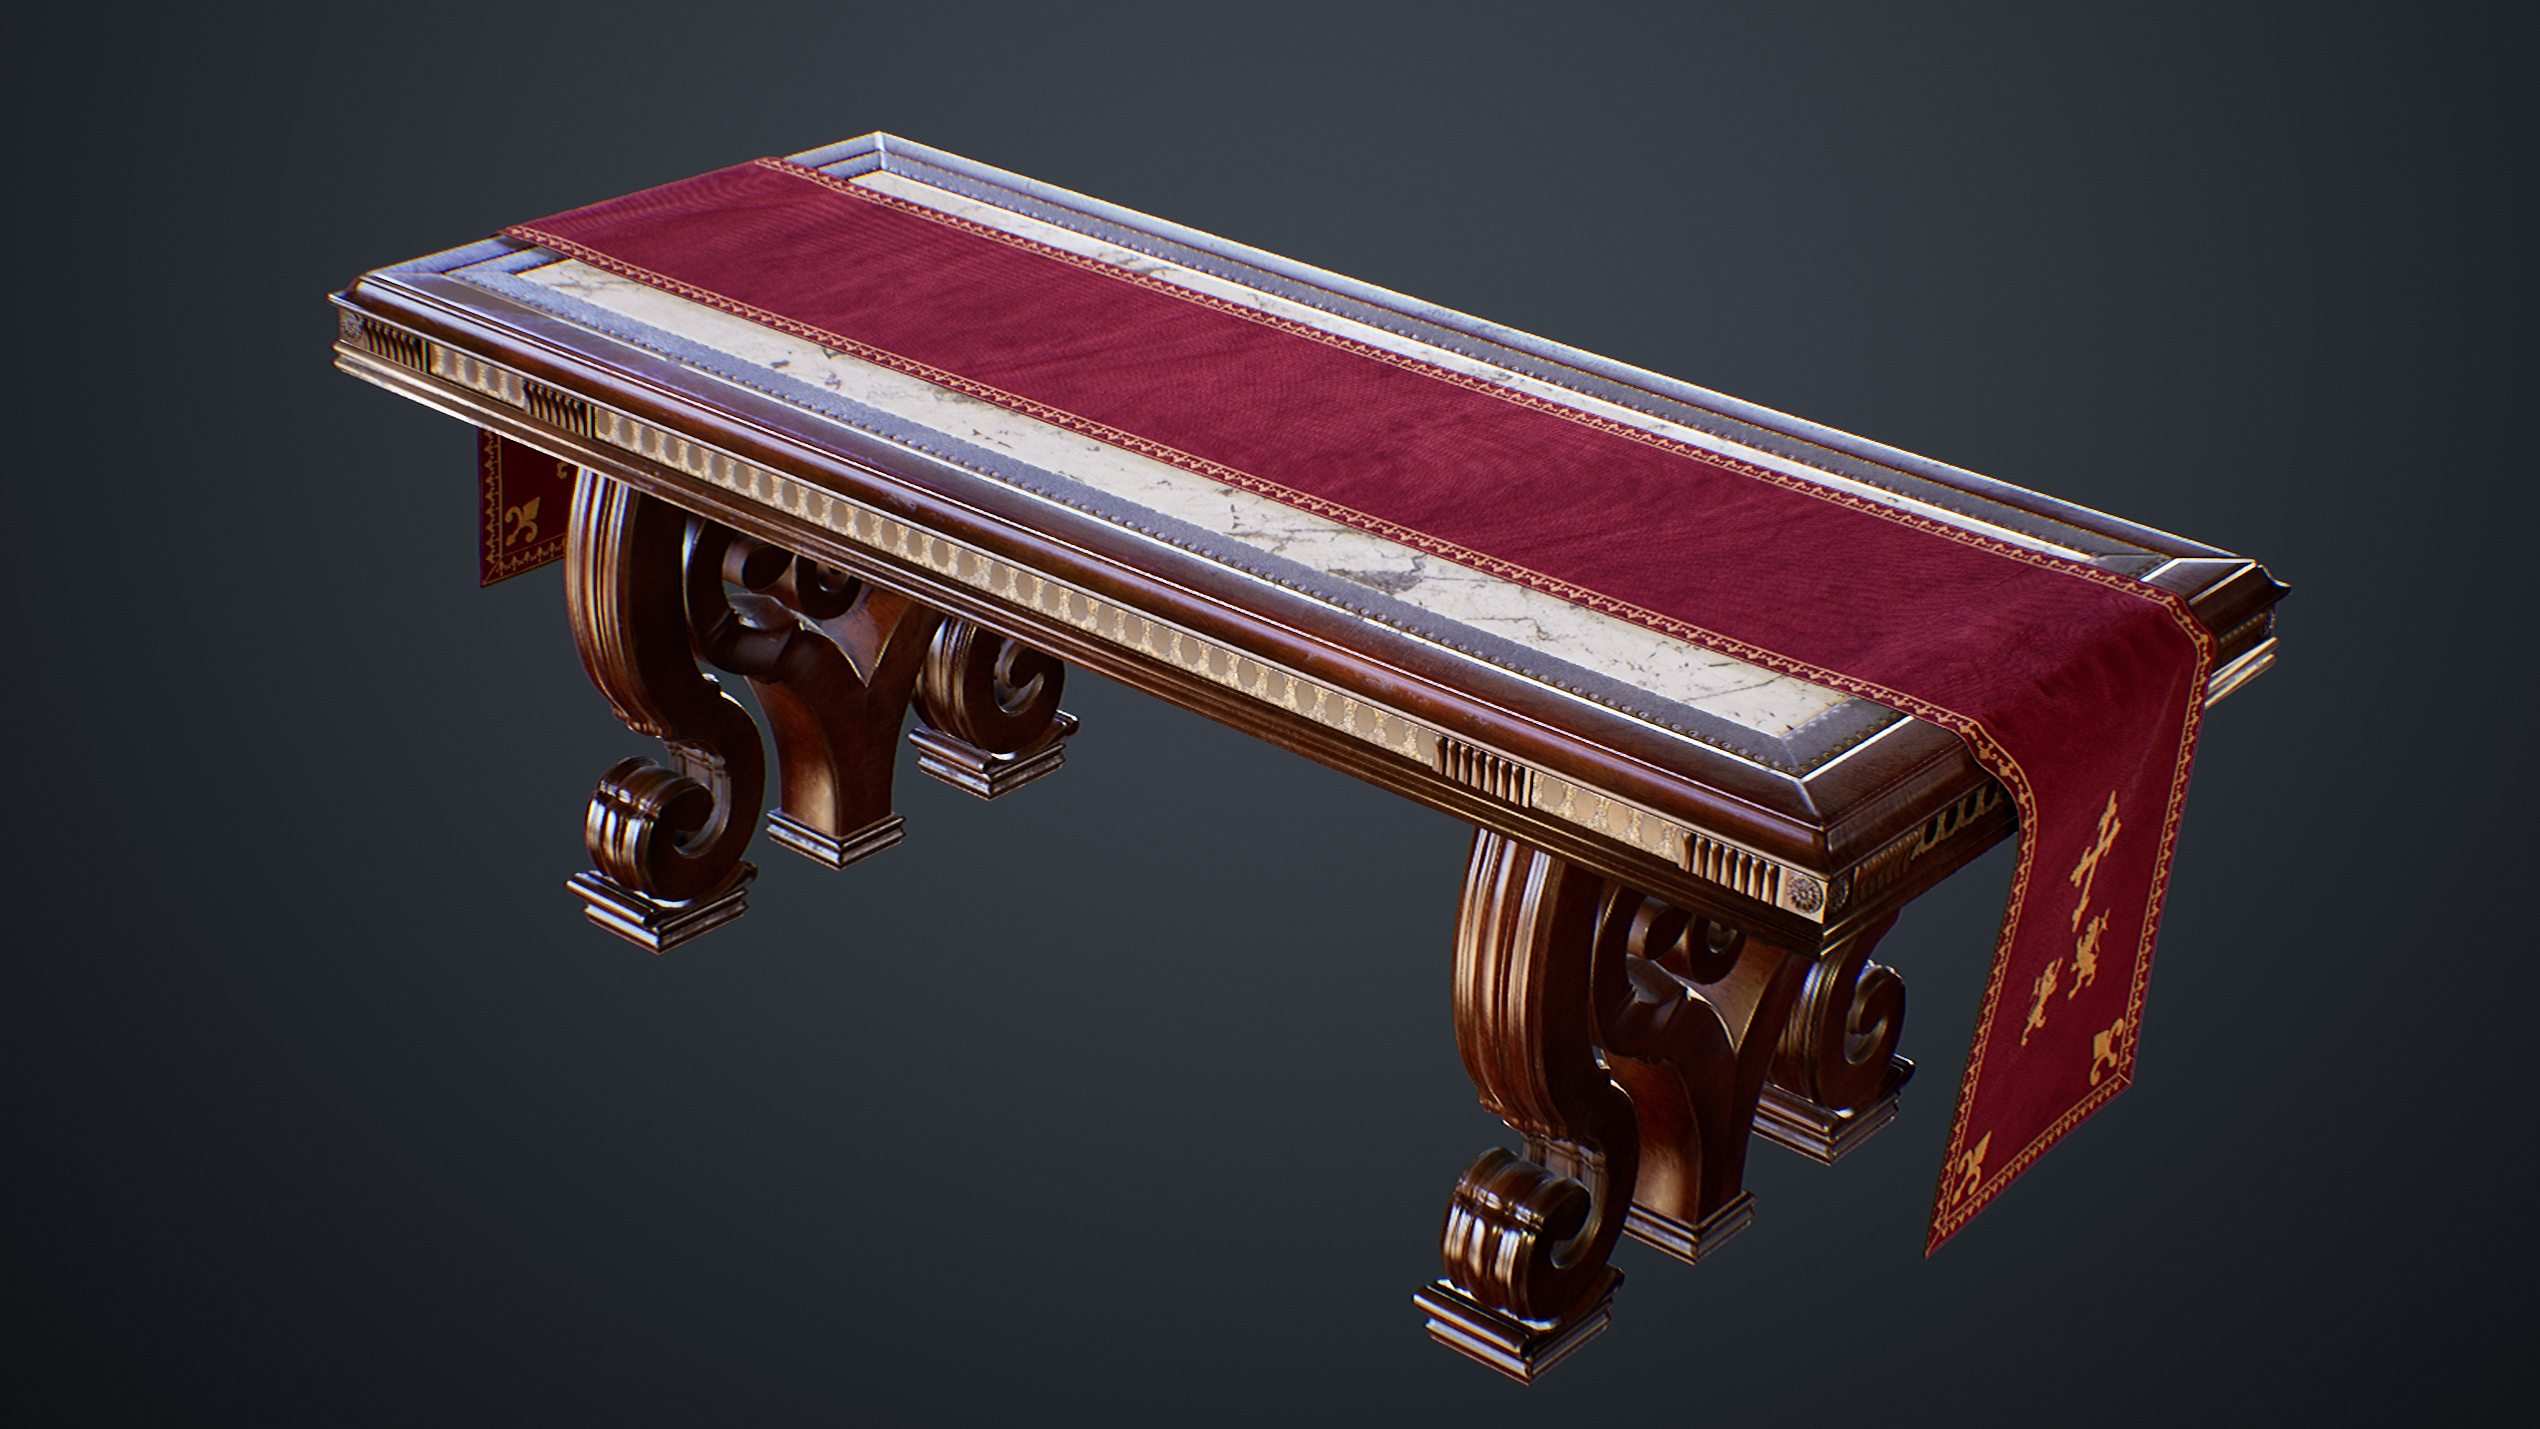 UE4 screenshot of the victorian table